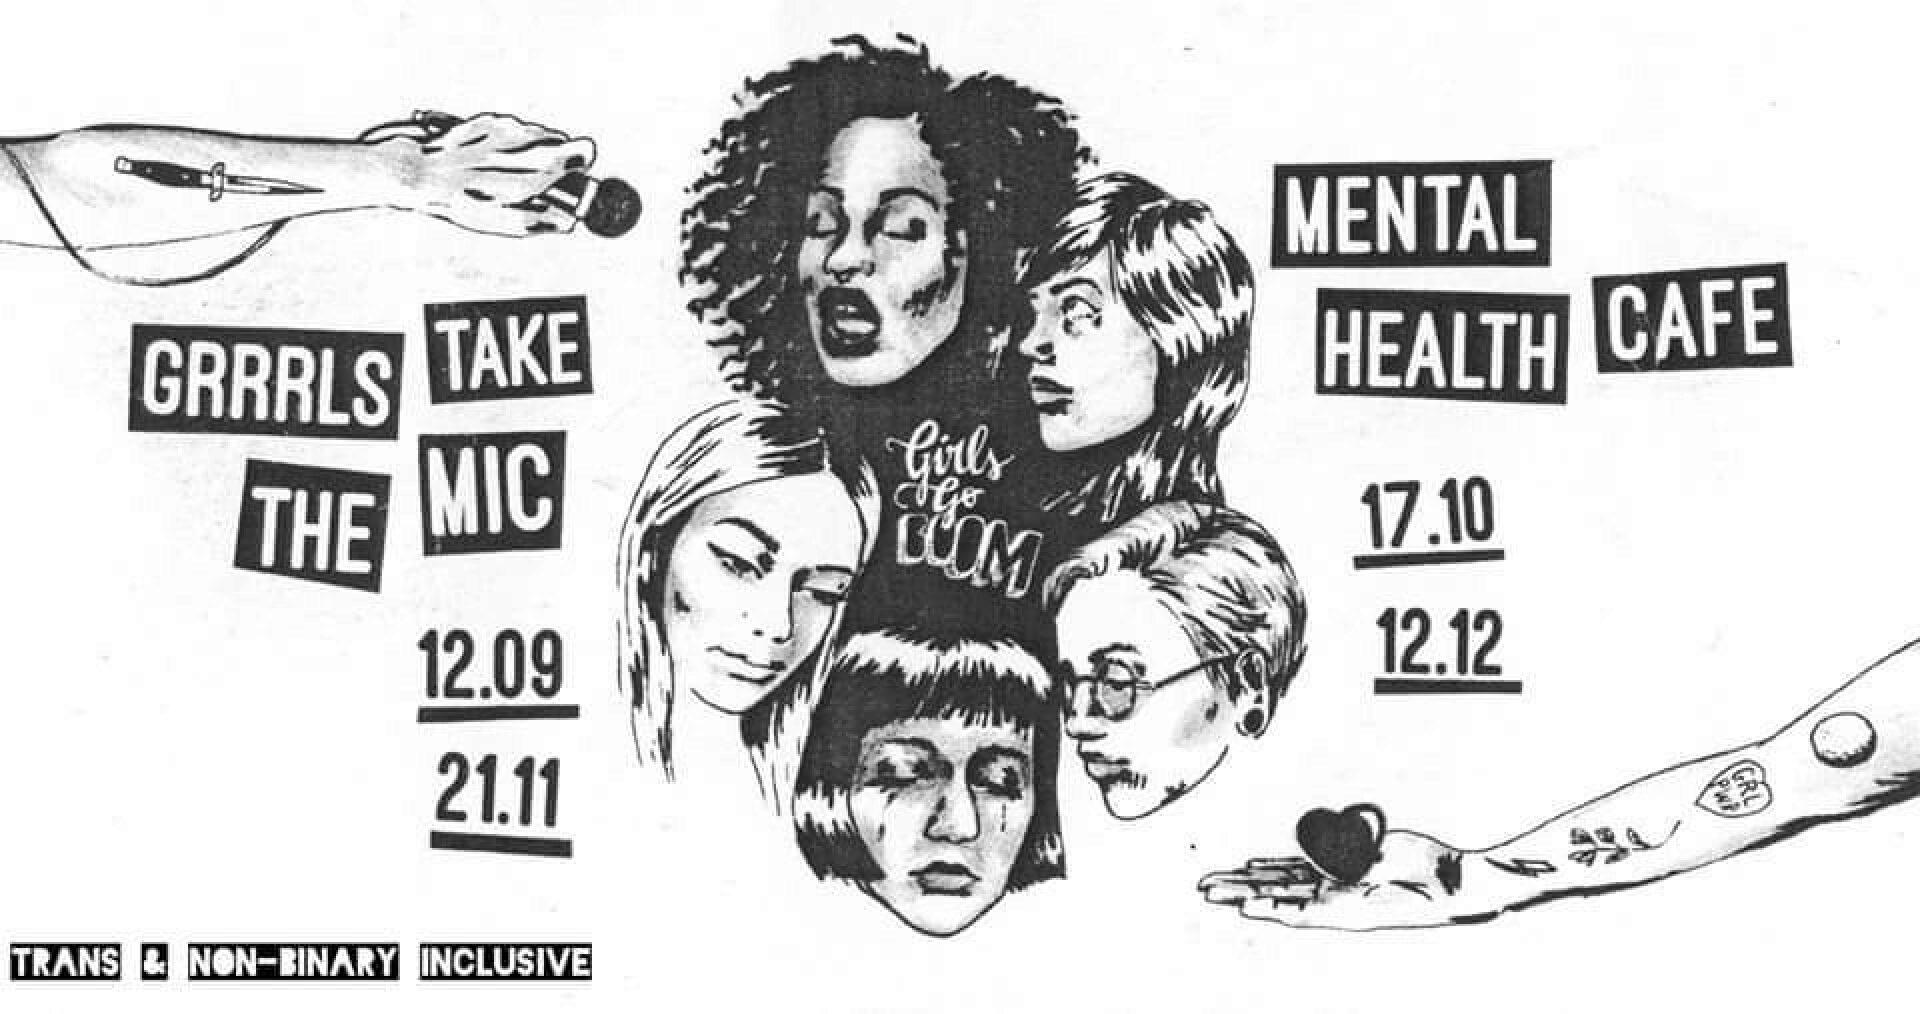 Girls go BOOM: Mental Health Café #2